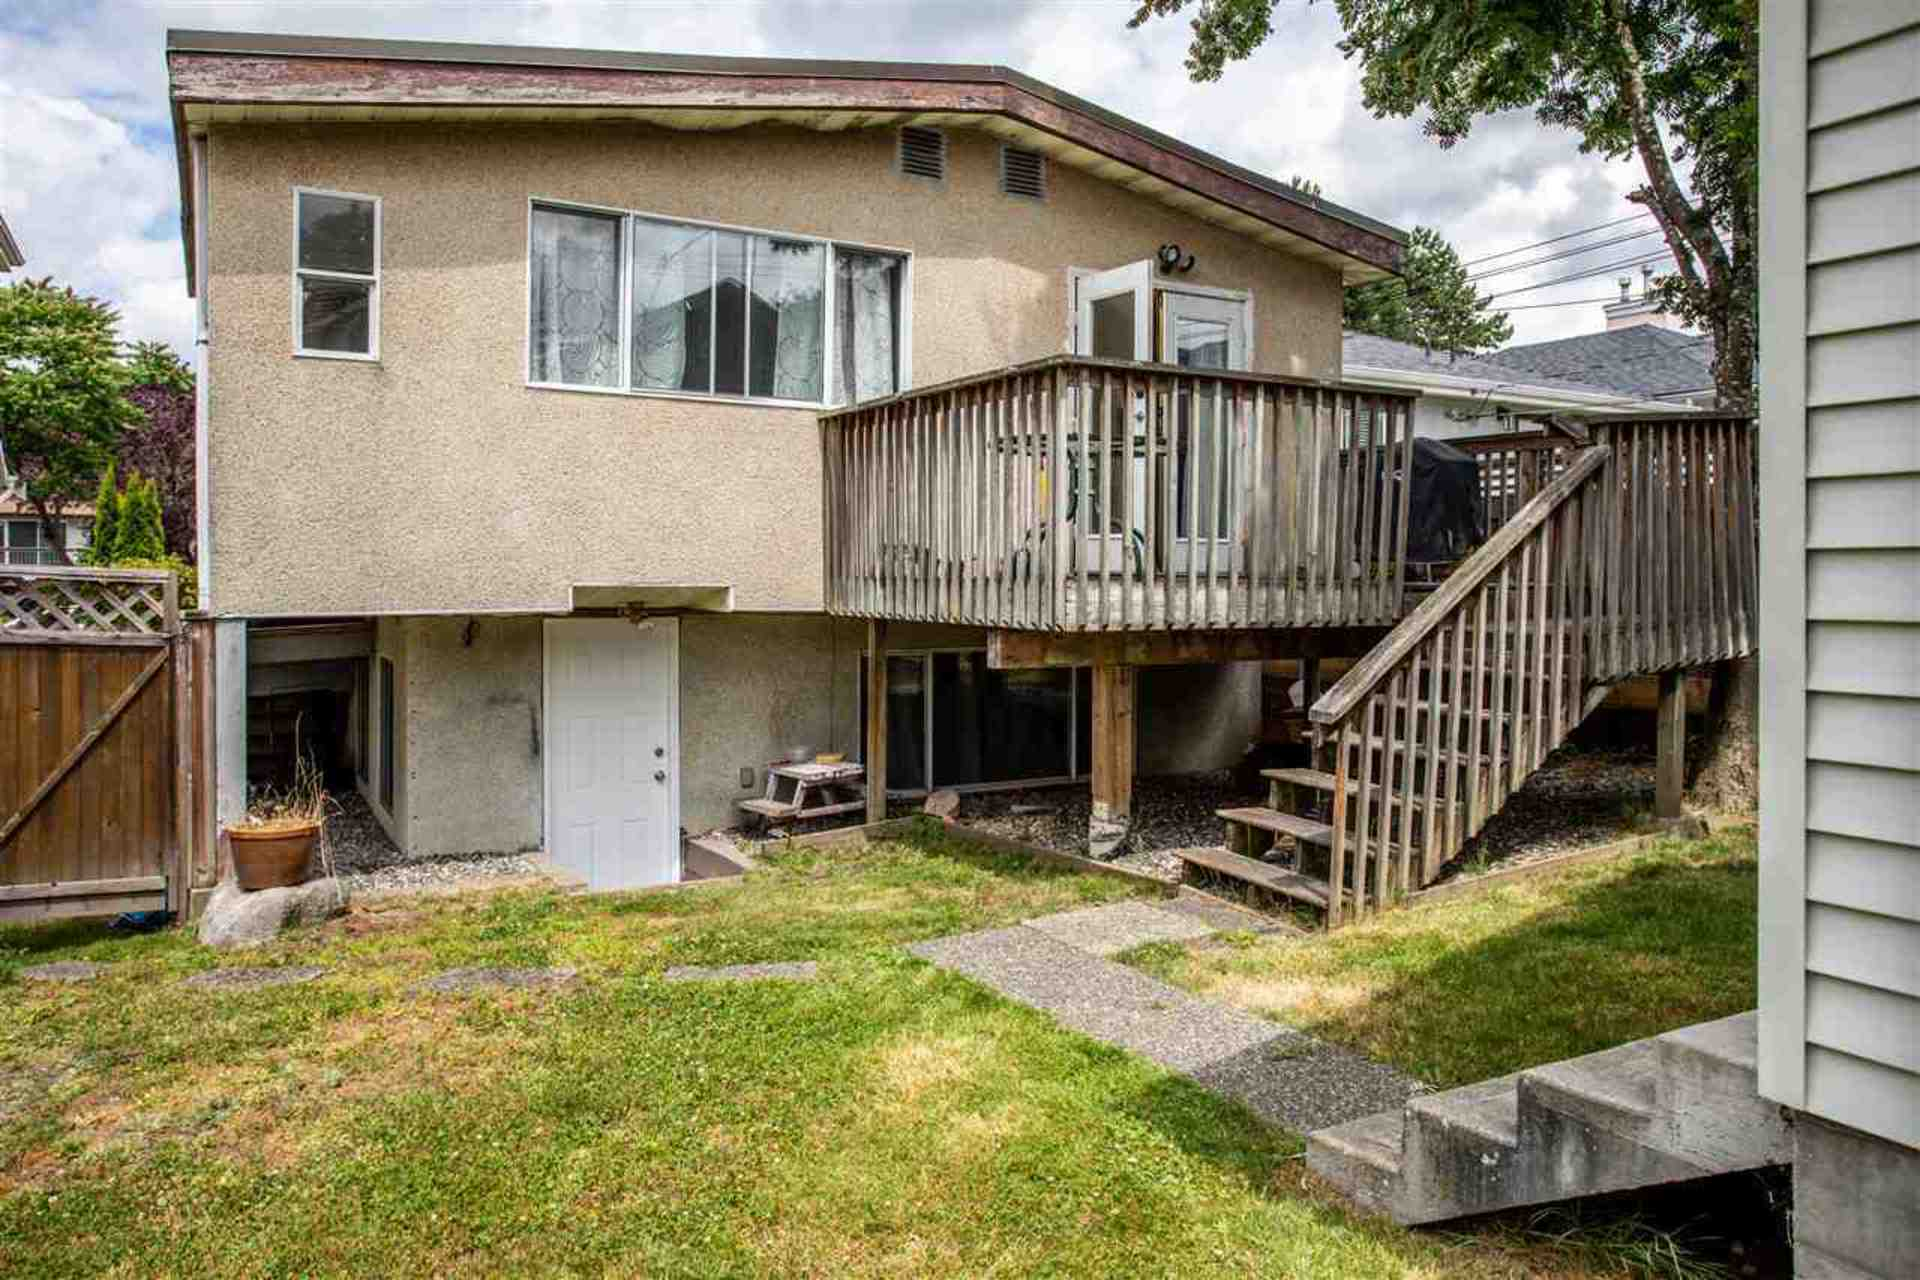 4556-pender-street-capitol-hill-bn-burnaby-north-14 at 4556 Pender Street, Capitol Hill BN, Burnaby North